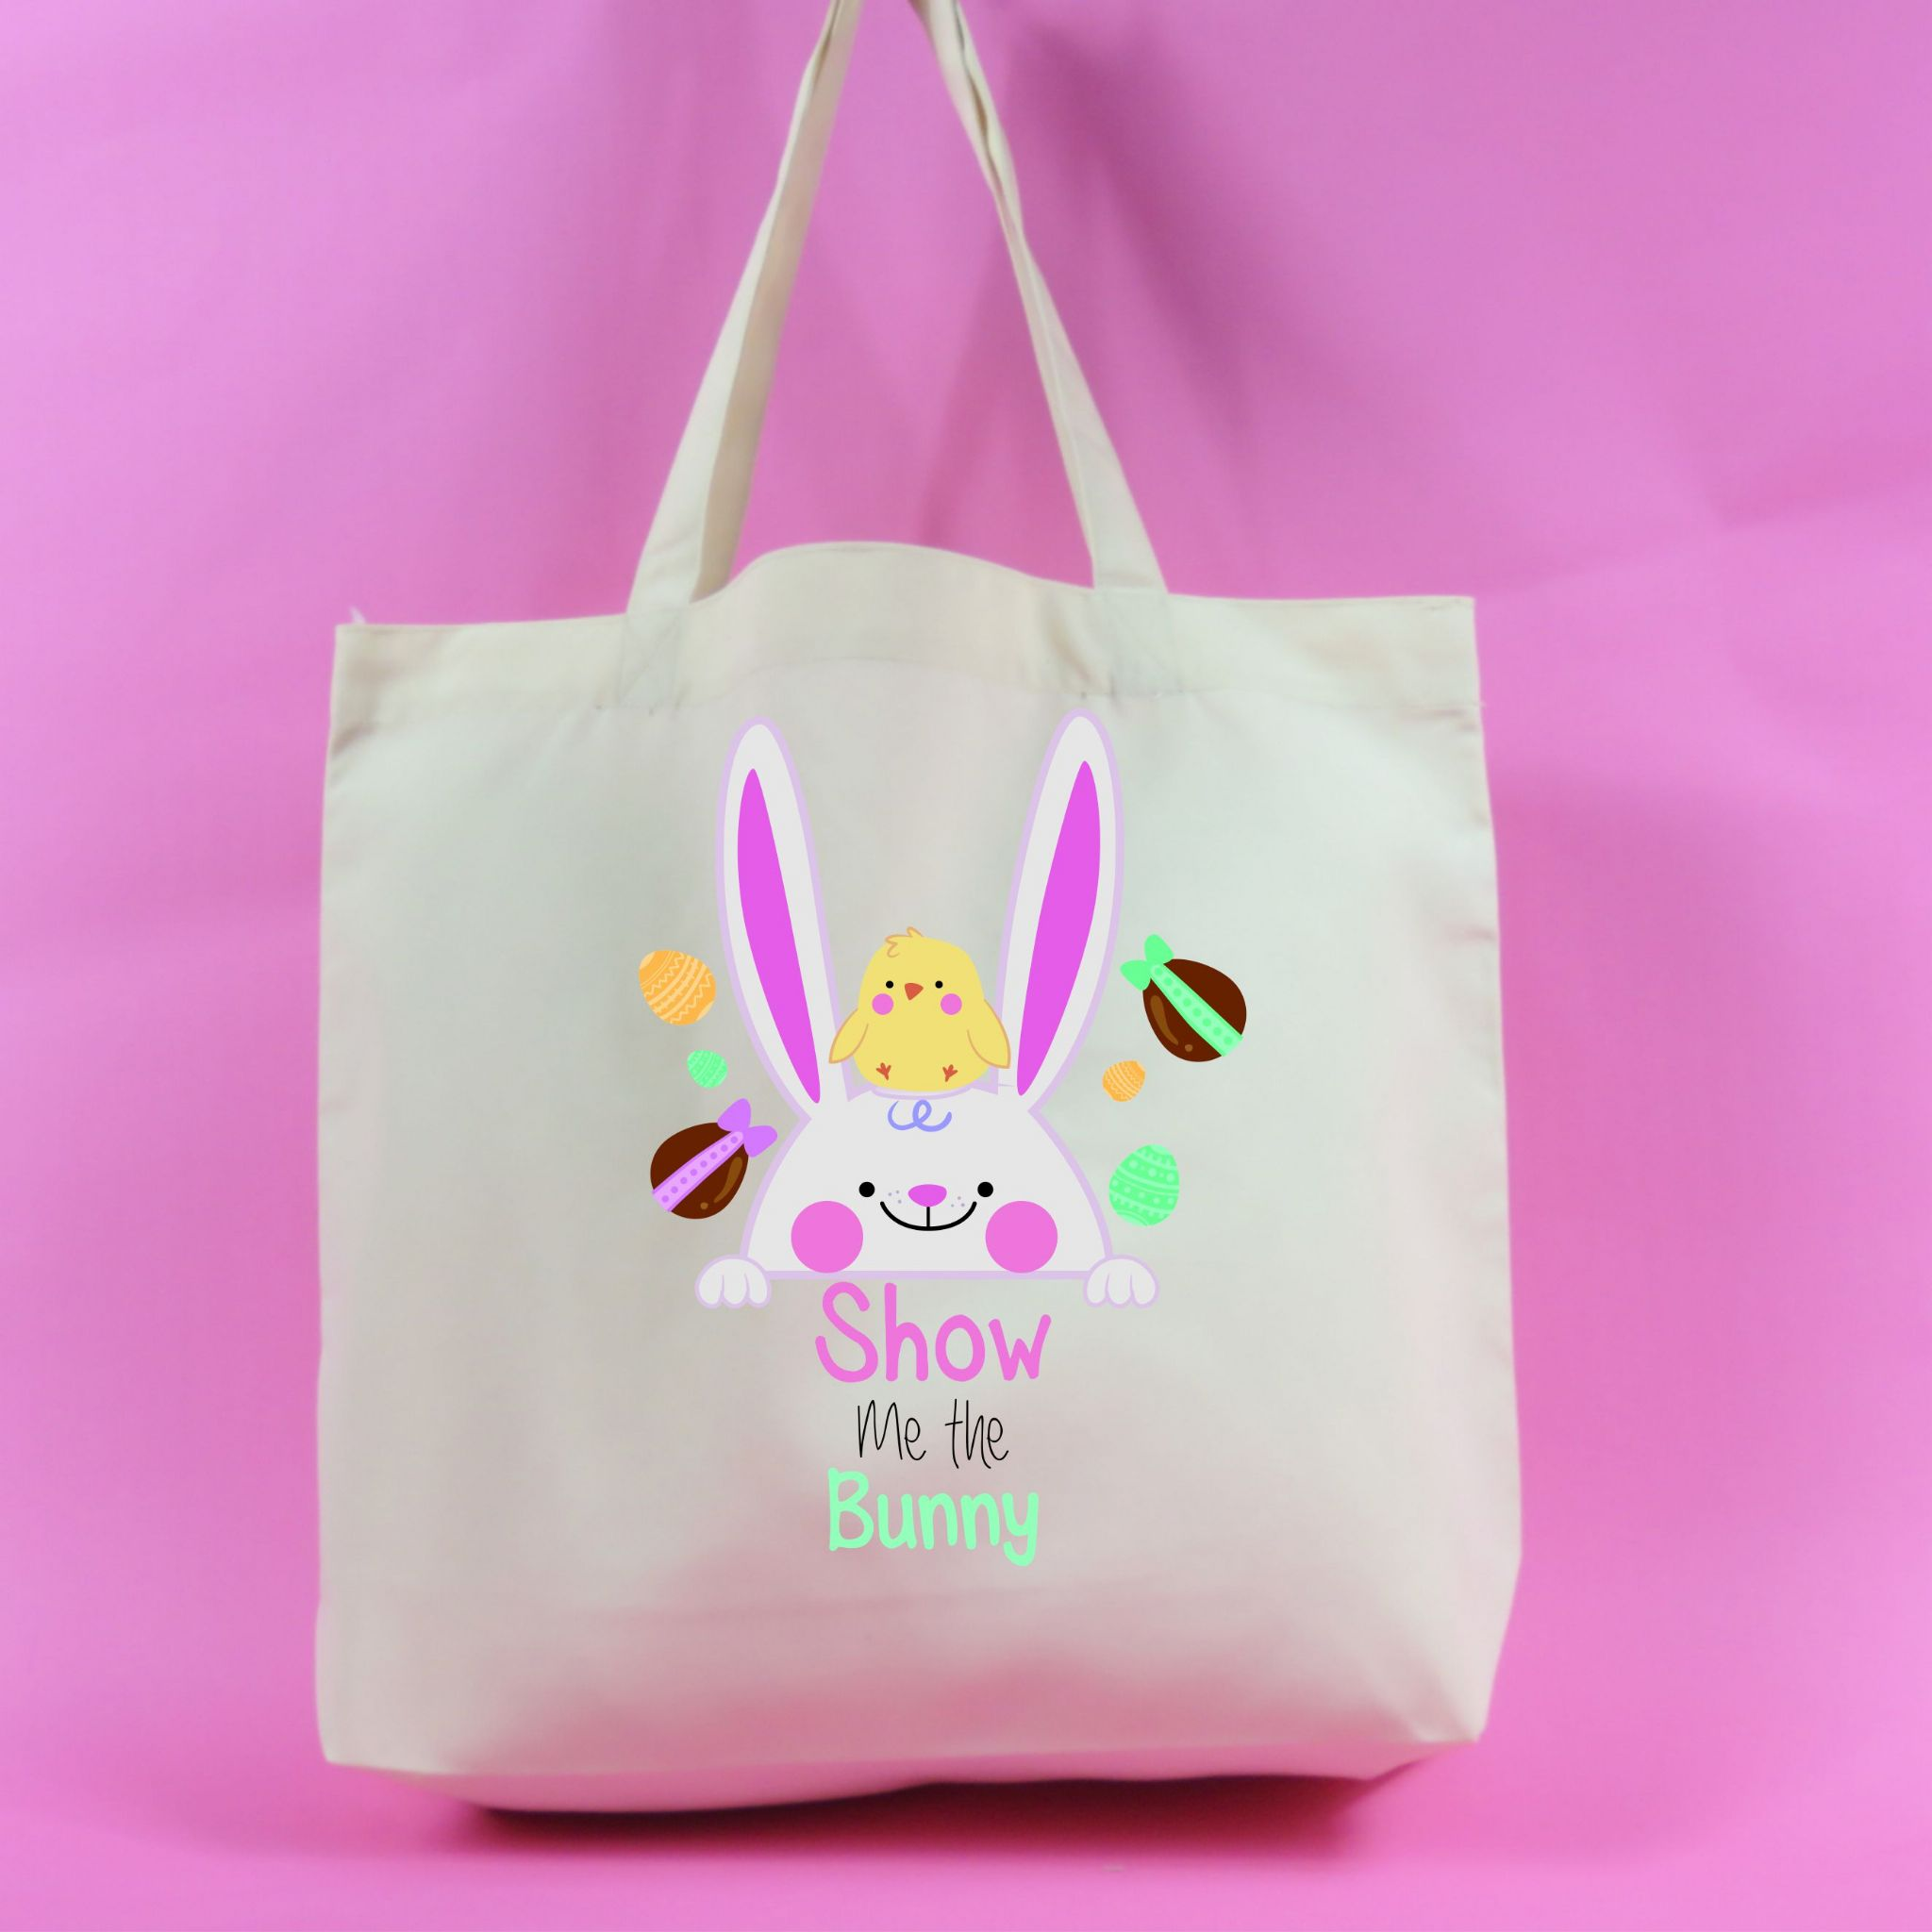 Show me the bunny tote bag easter tote bag gift for bunny lover show me the bunny tote bag easter tote bag gift for bunny lover bunny gift rabbit lover negle Images